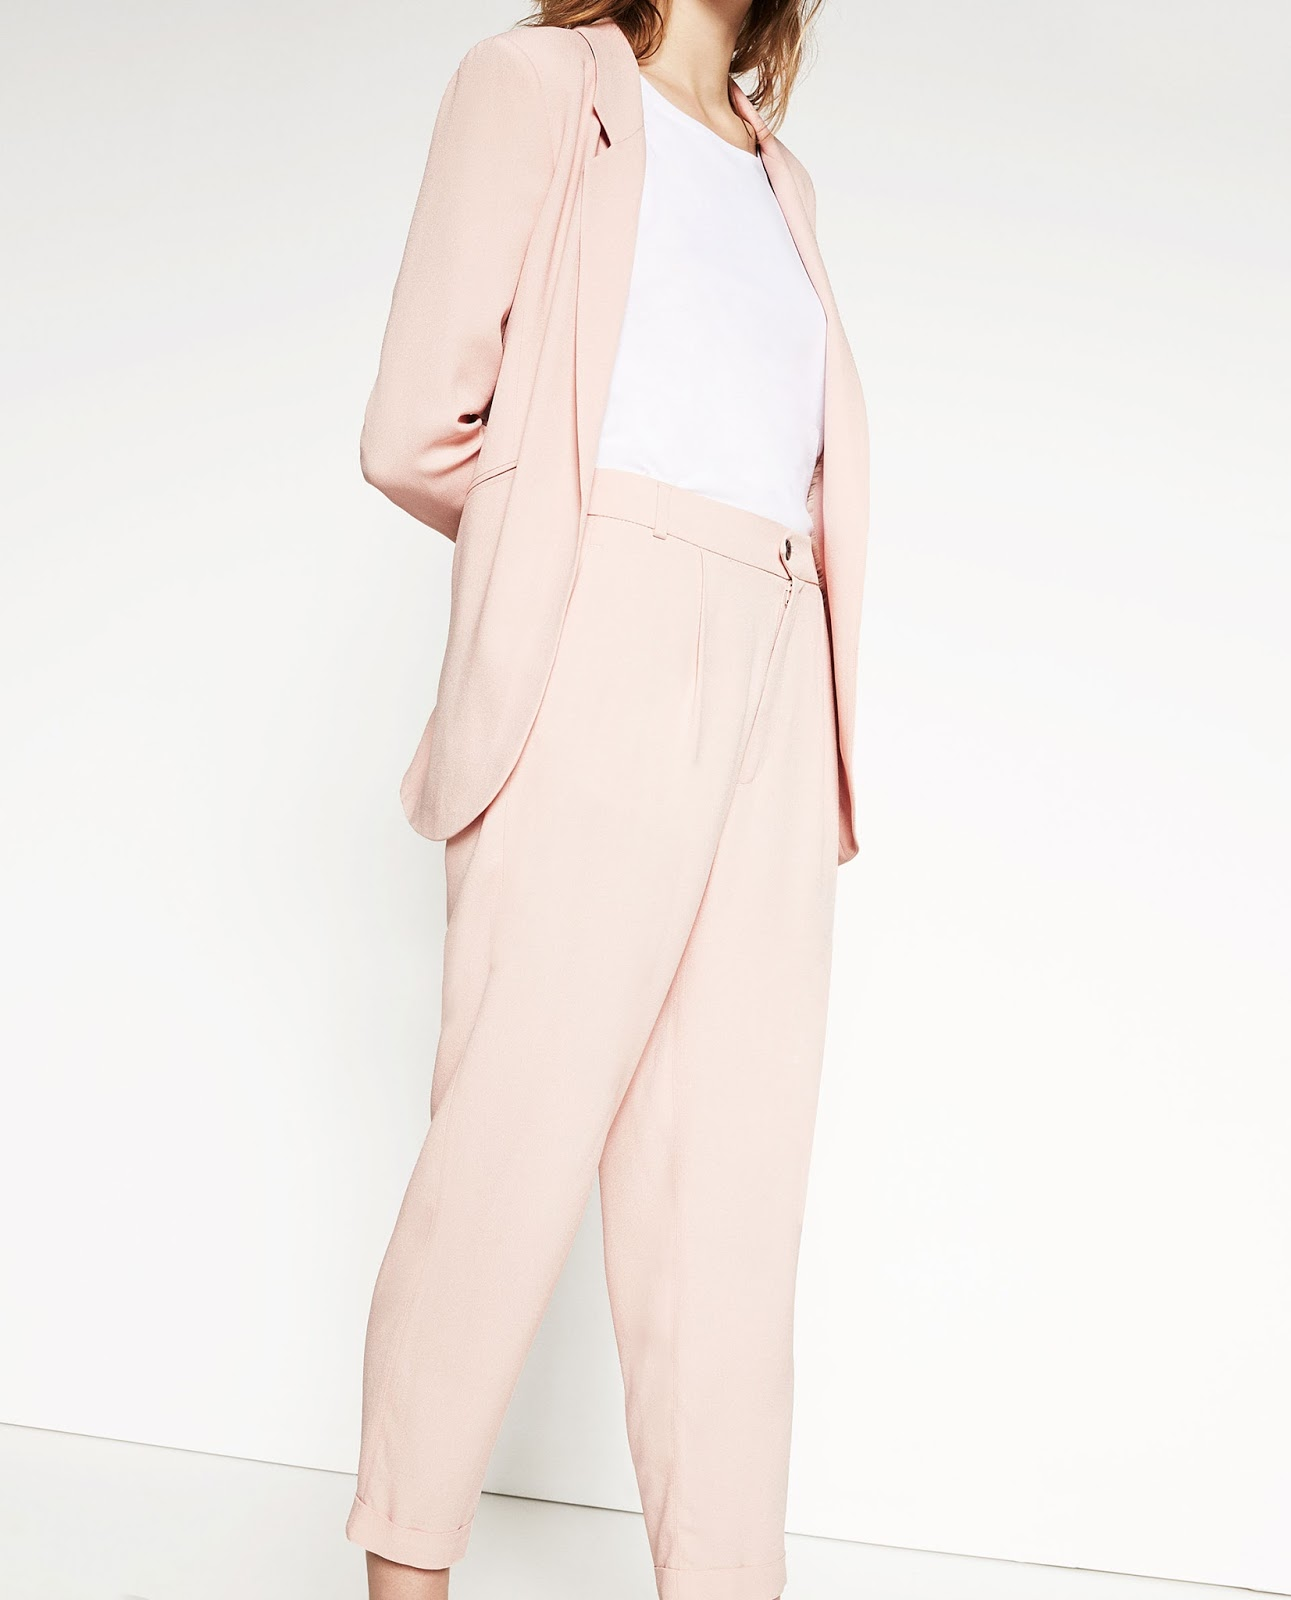 Blush Zara suit